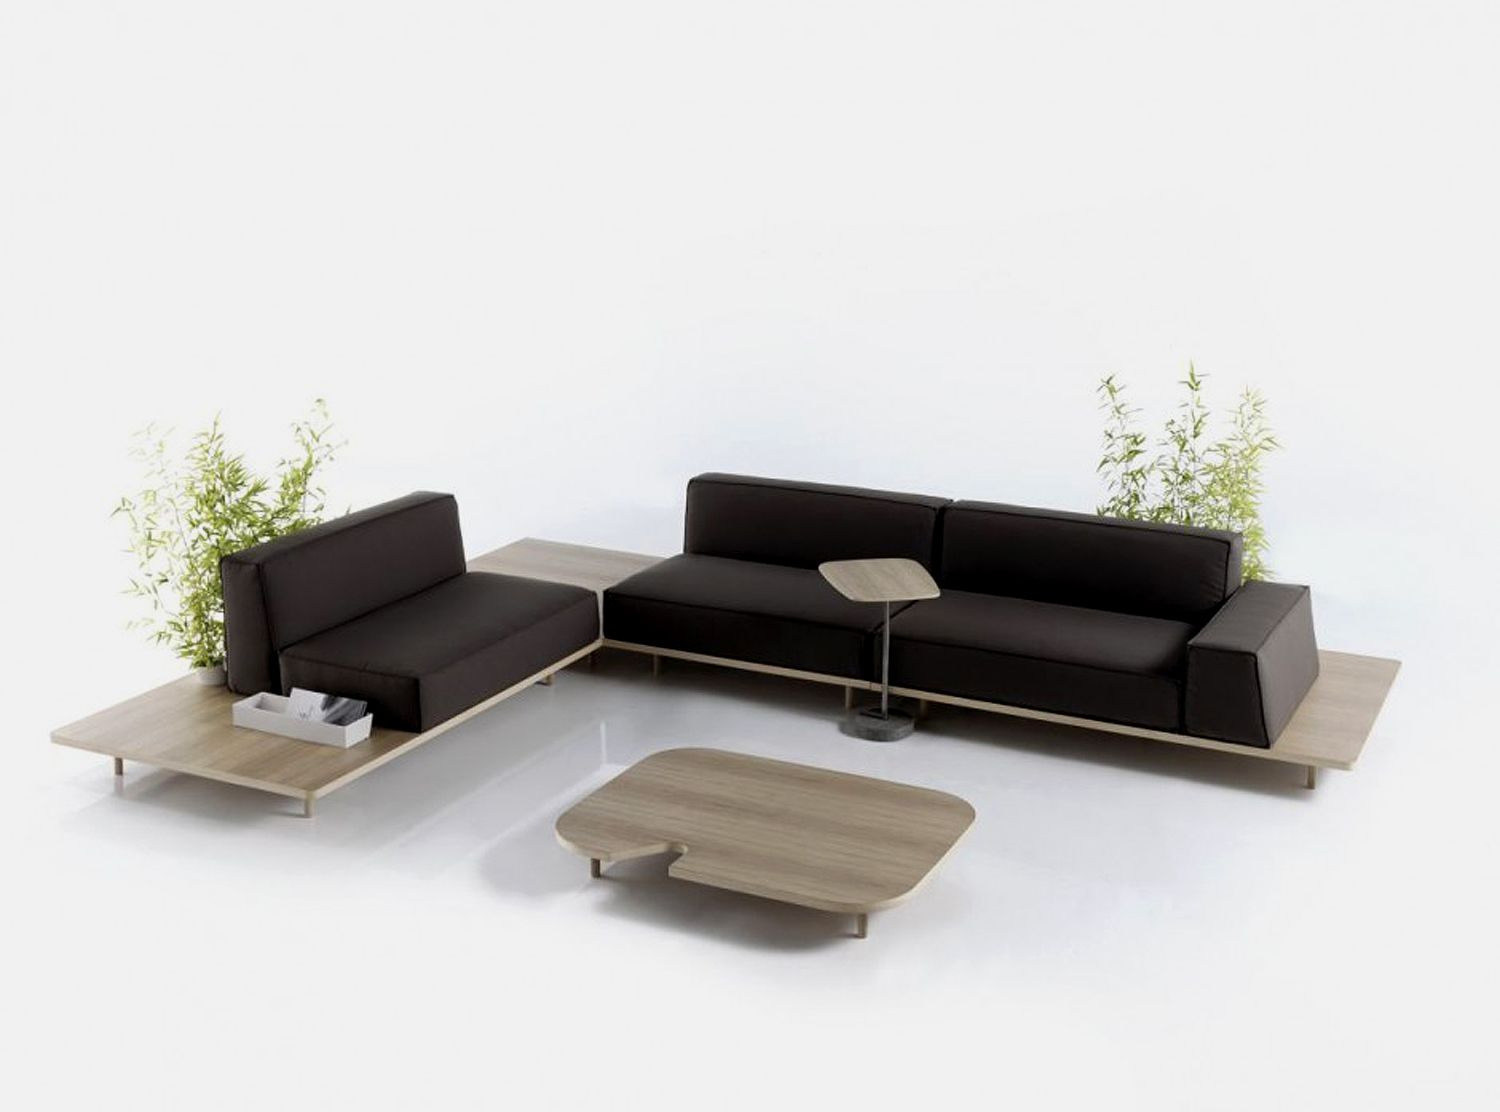 Contemporary Furniture Designs Ideas Sofa furniture Modern and